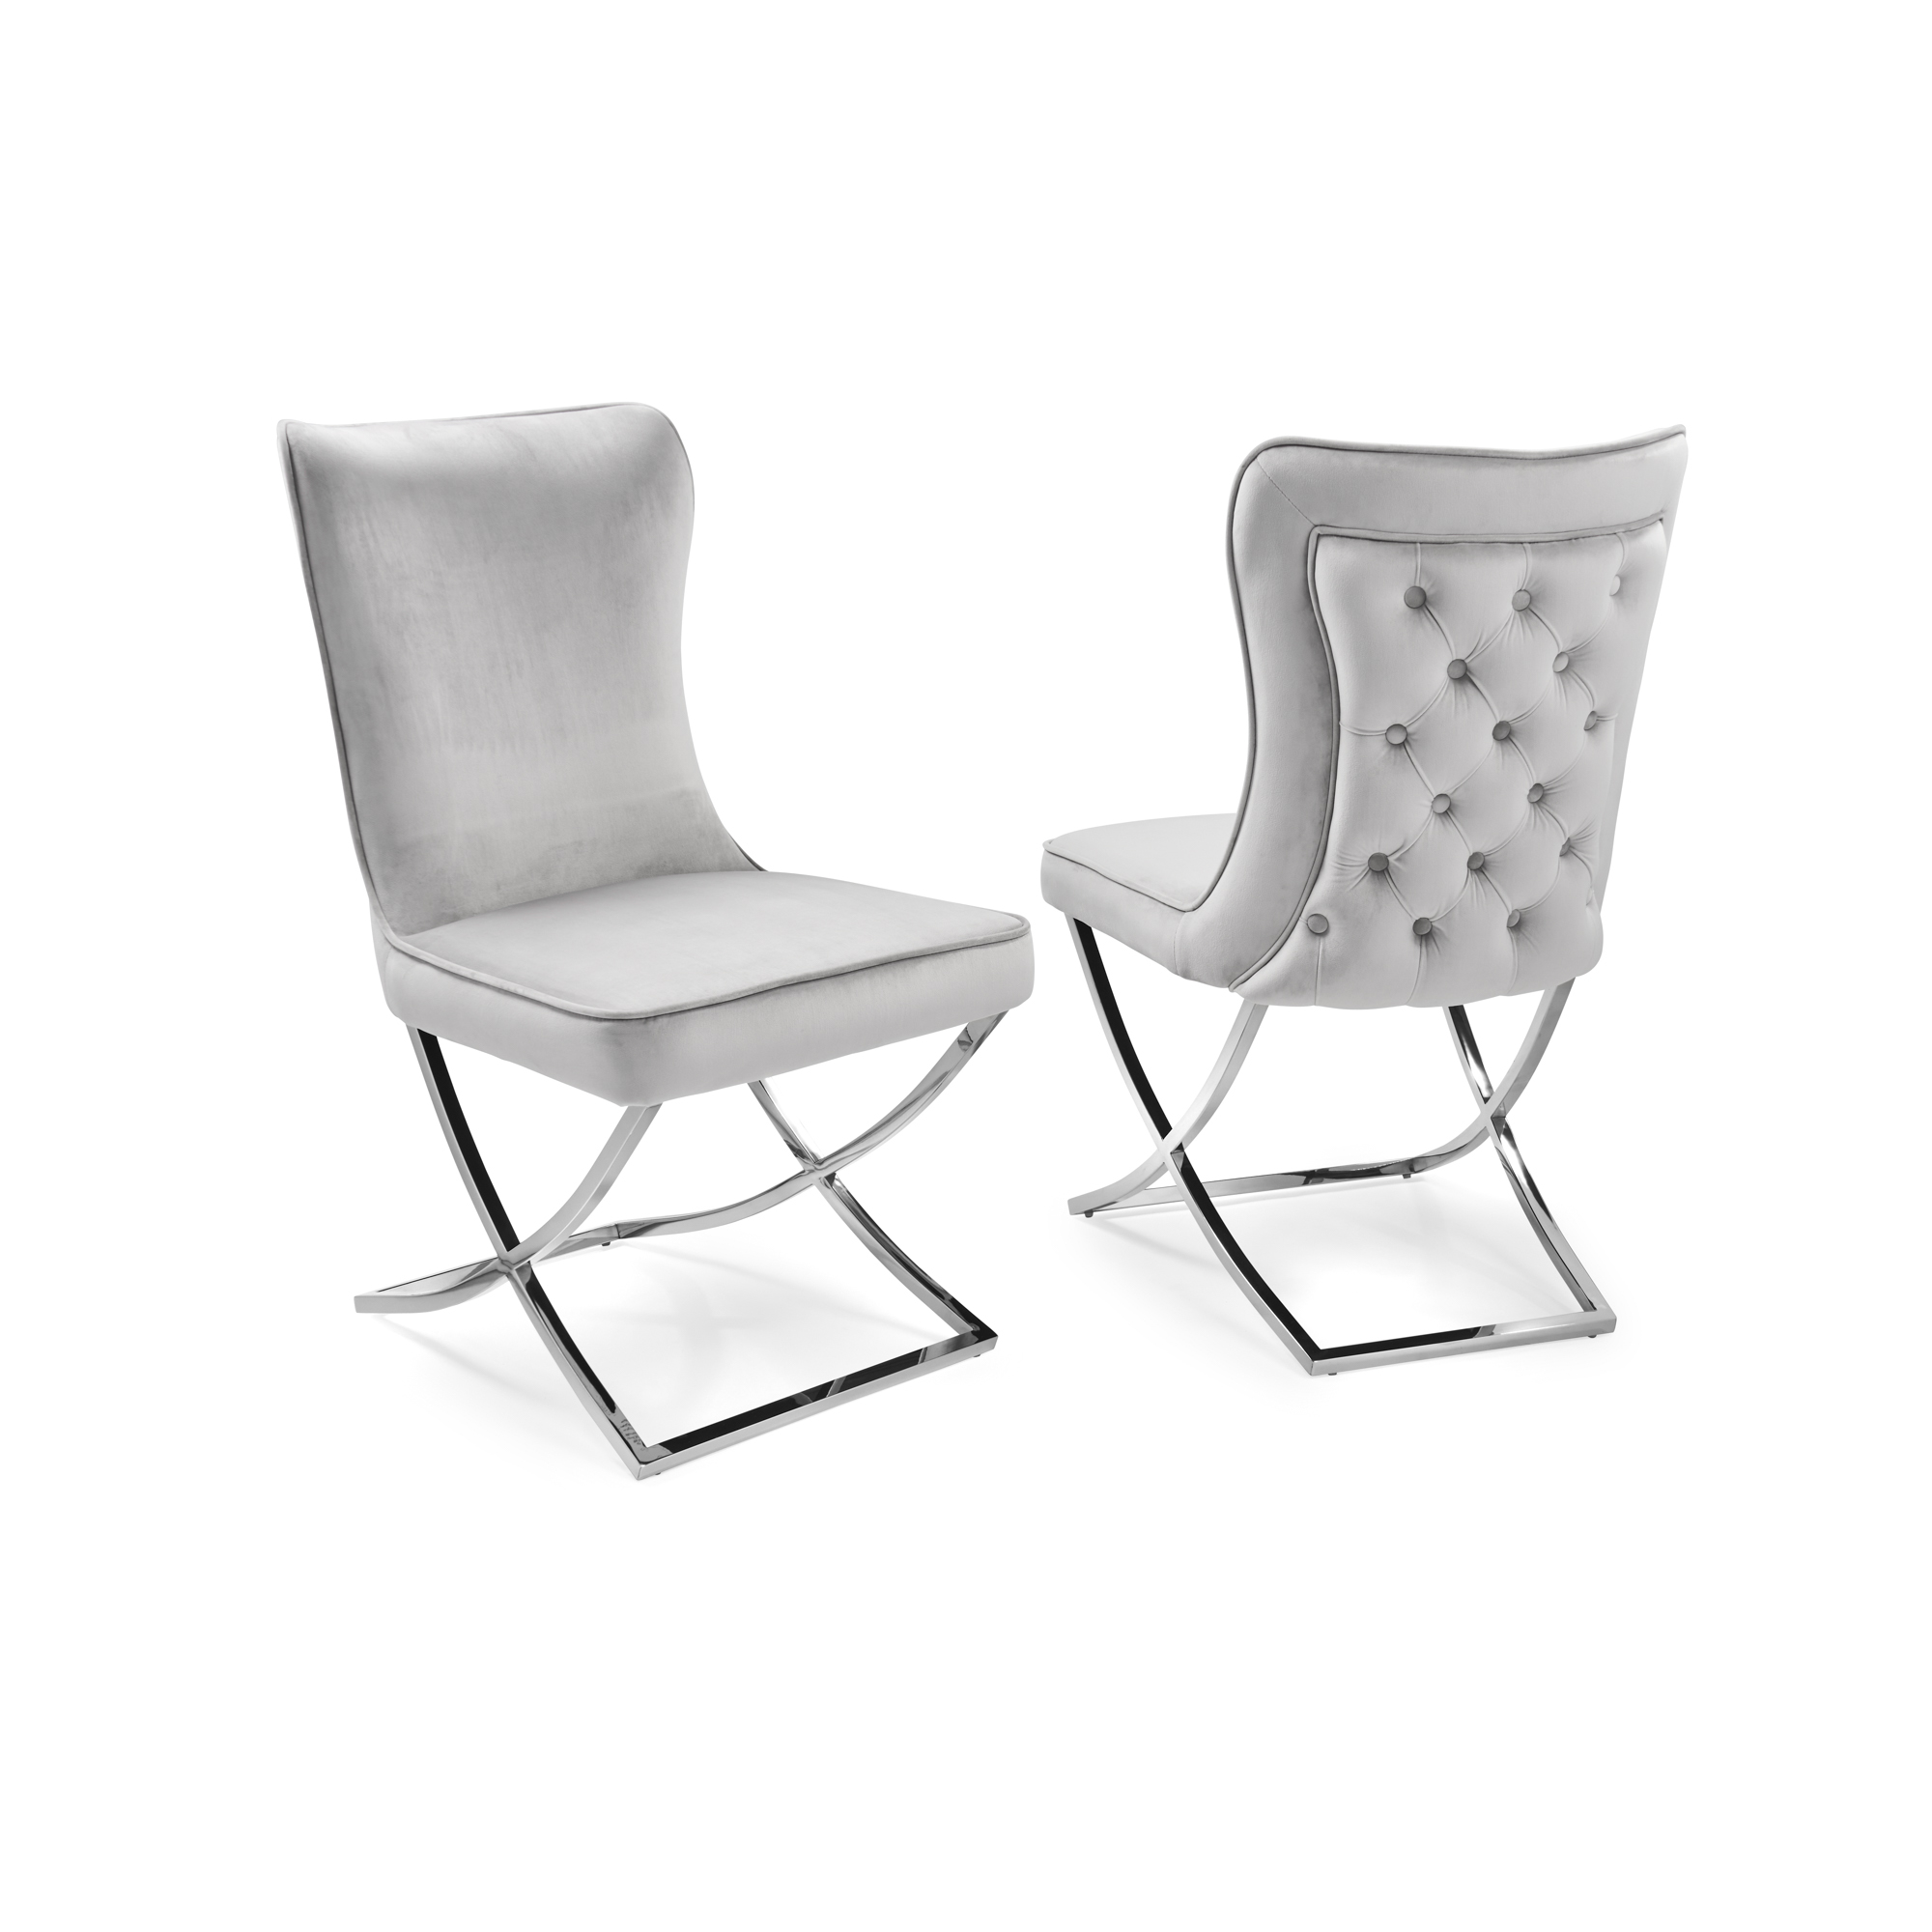 Pair of Cheshire Dove Grey Brushed Velvet Dining Chair with a Stainless Steel Cross Leg